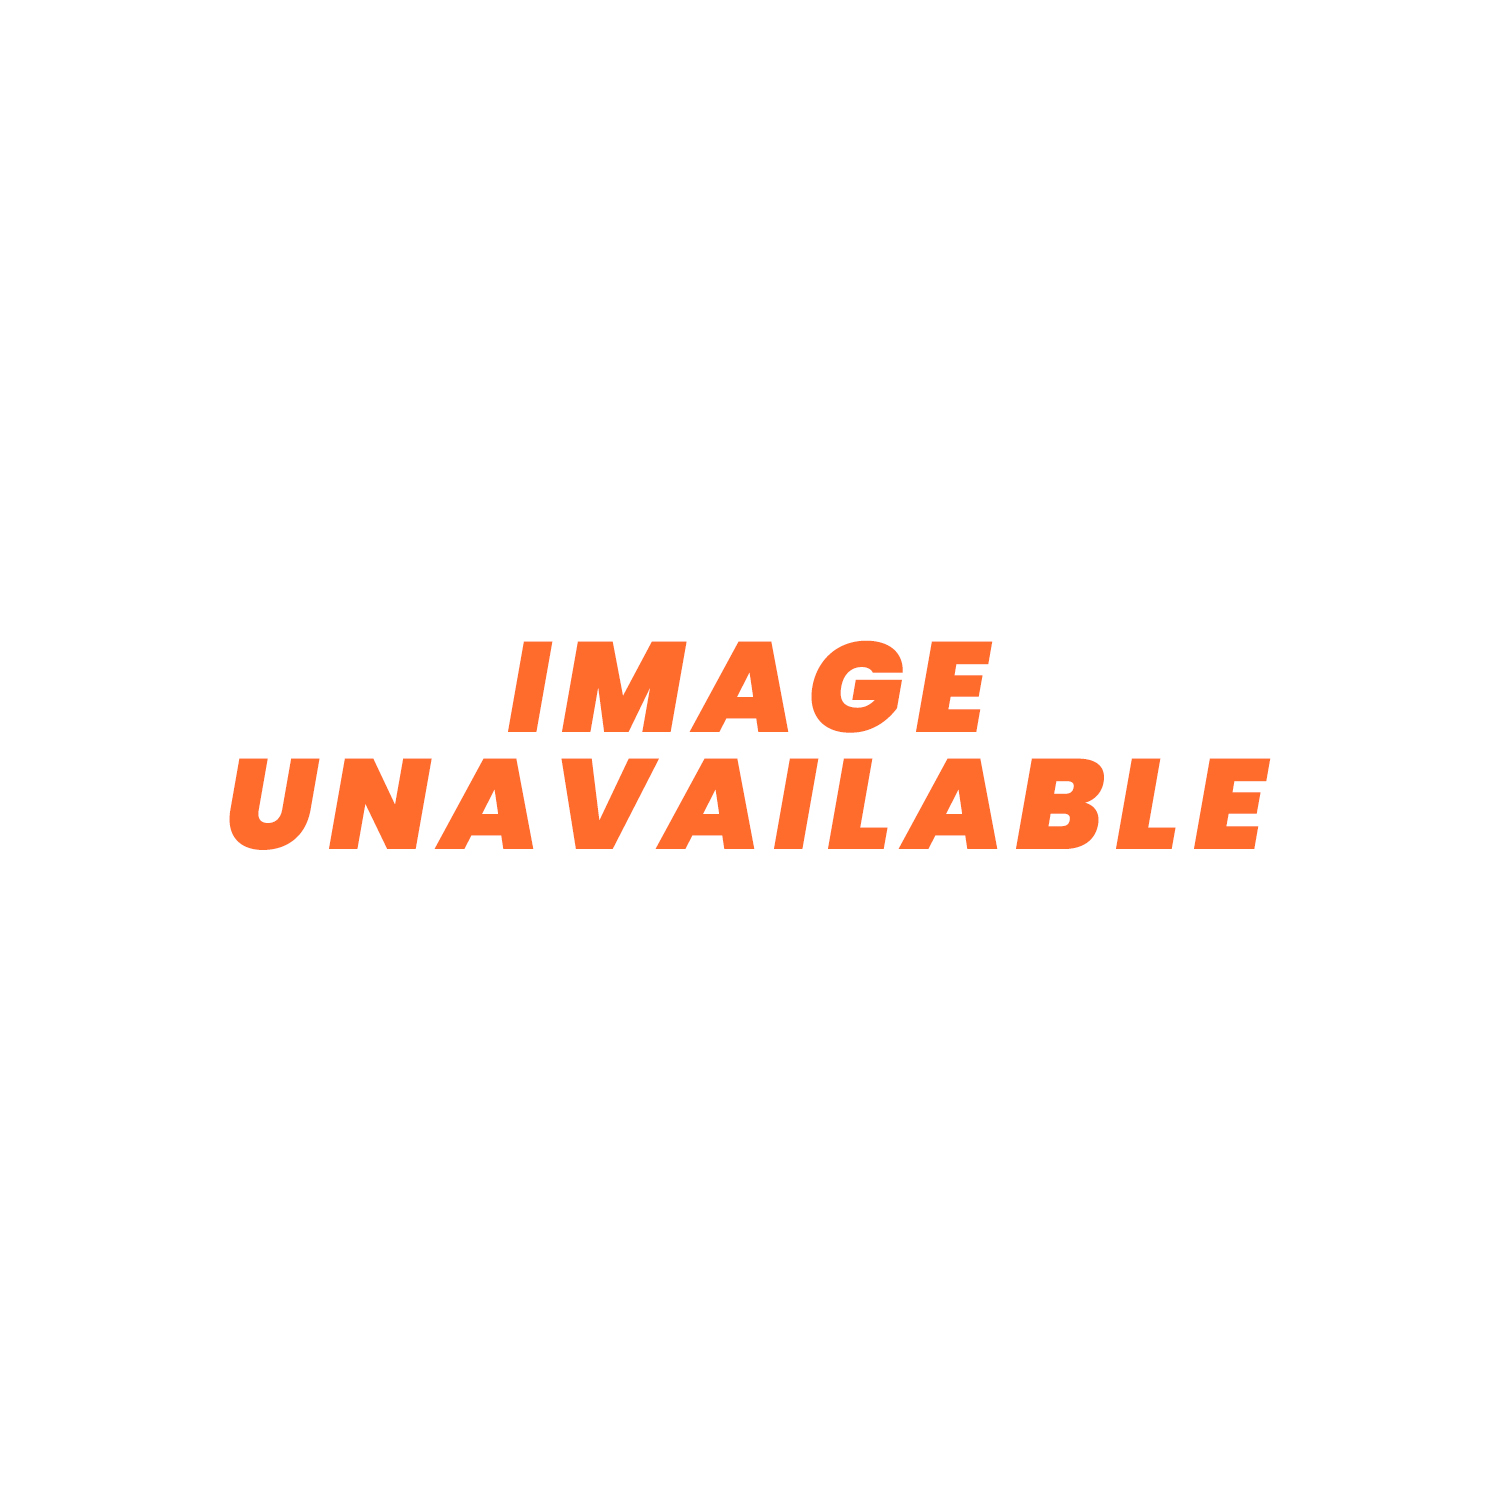 "SPAL Radiator Fan - 10.0"" (255mm) Pull VA11-AP7/C-57A 802cfm"